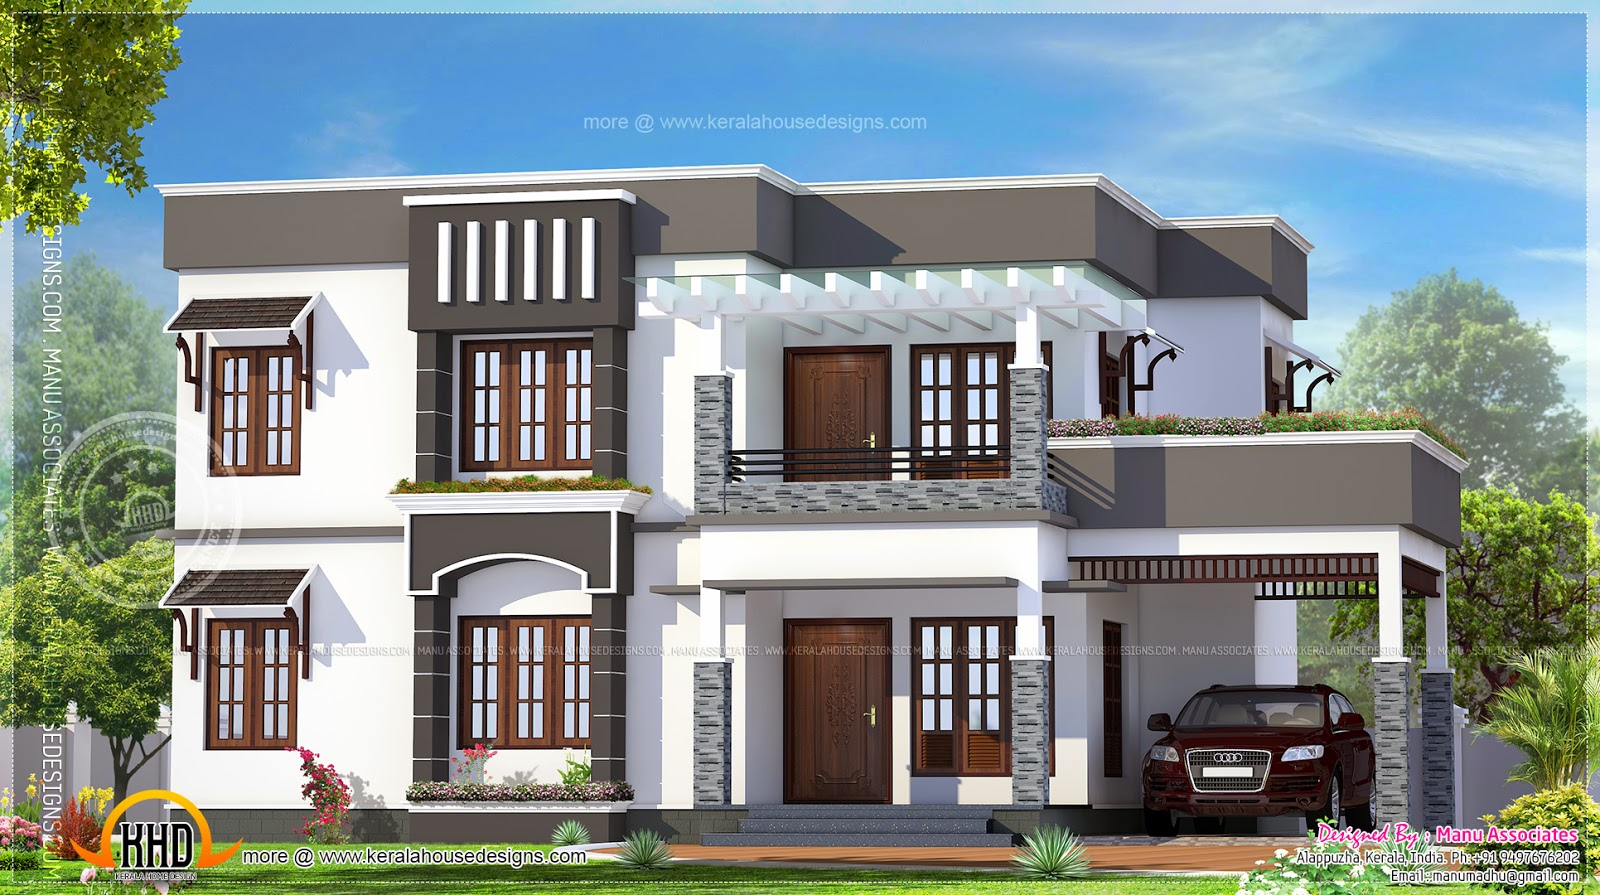 4 bhk flat roof house exterior kerala home design and for Outer look of house design